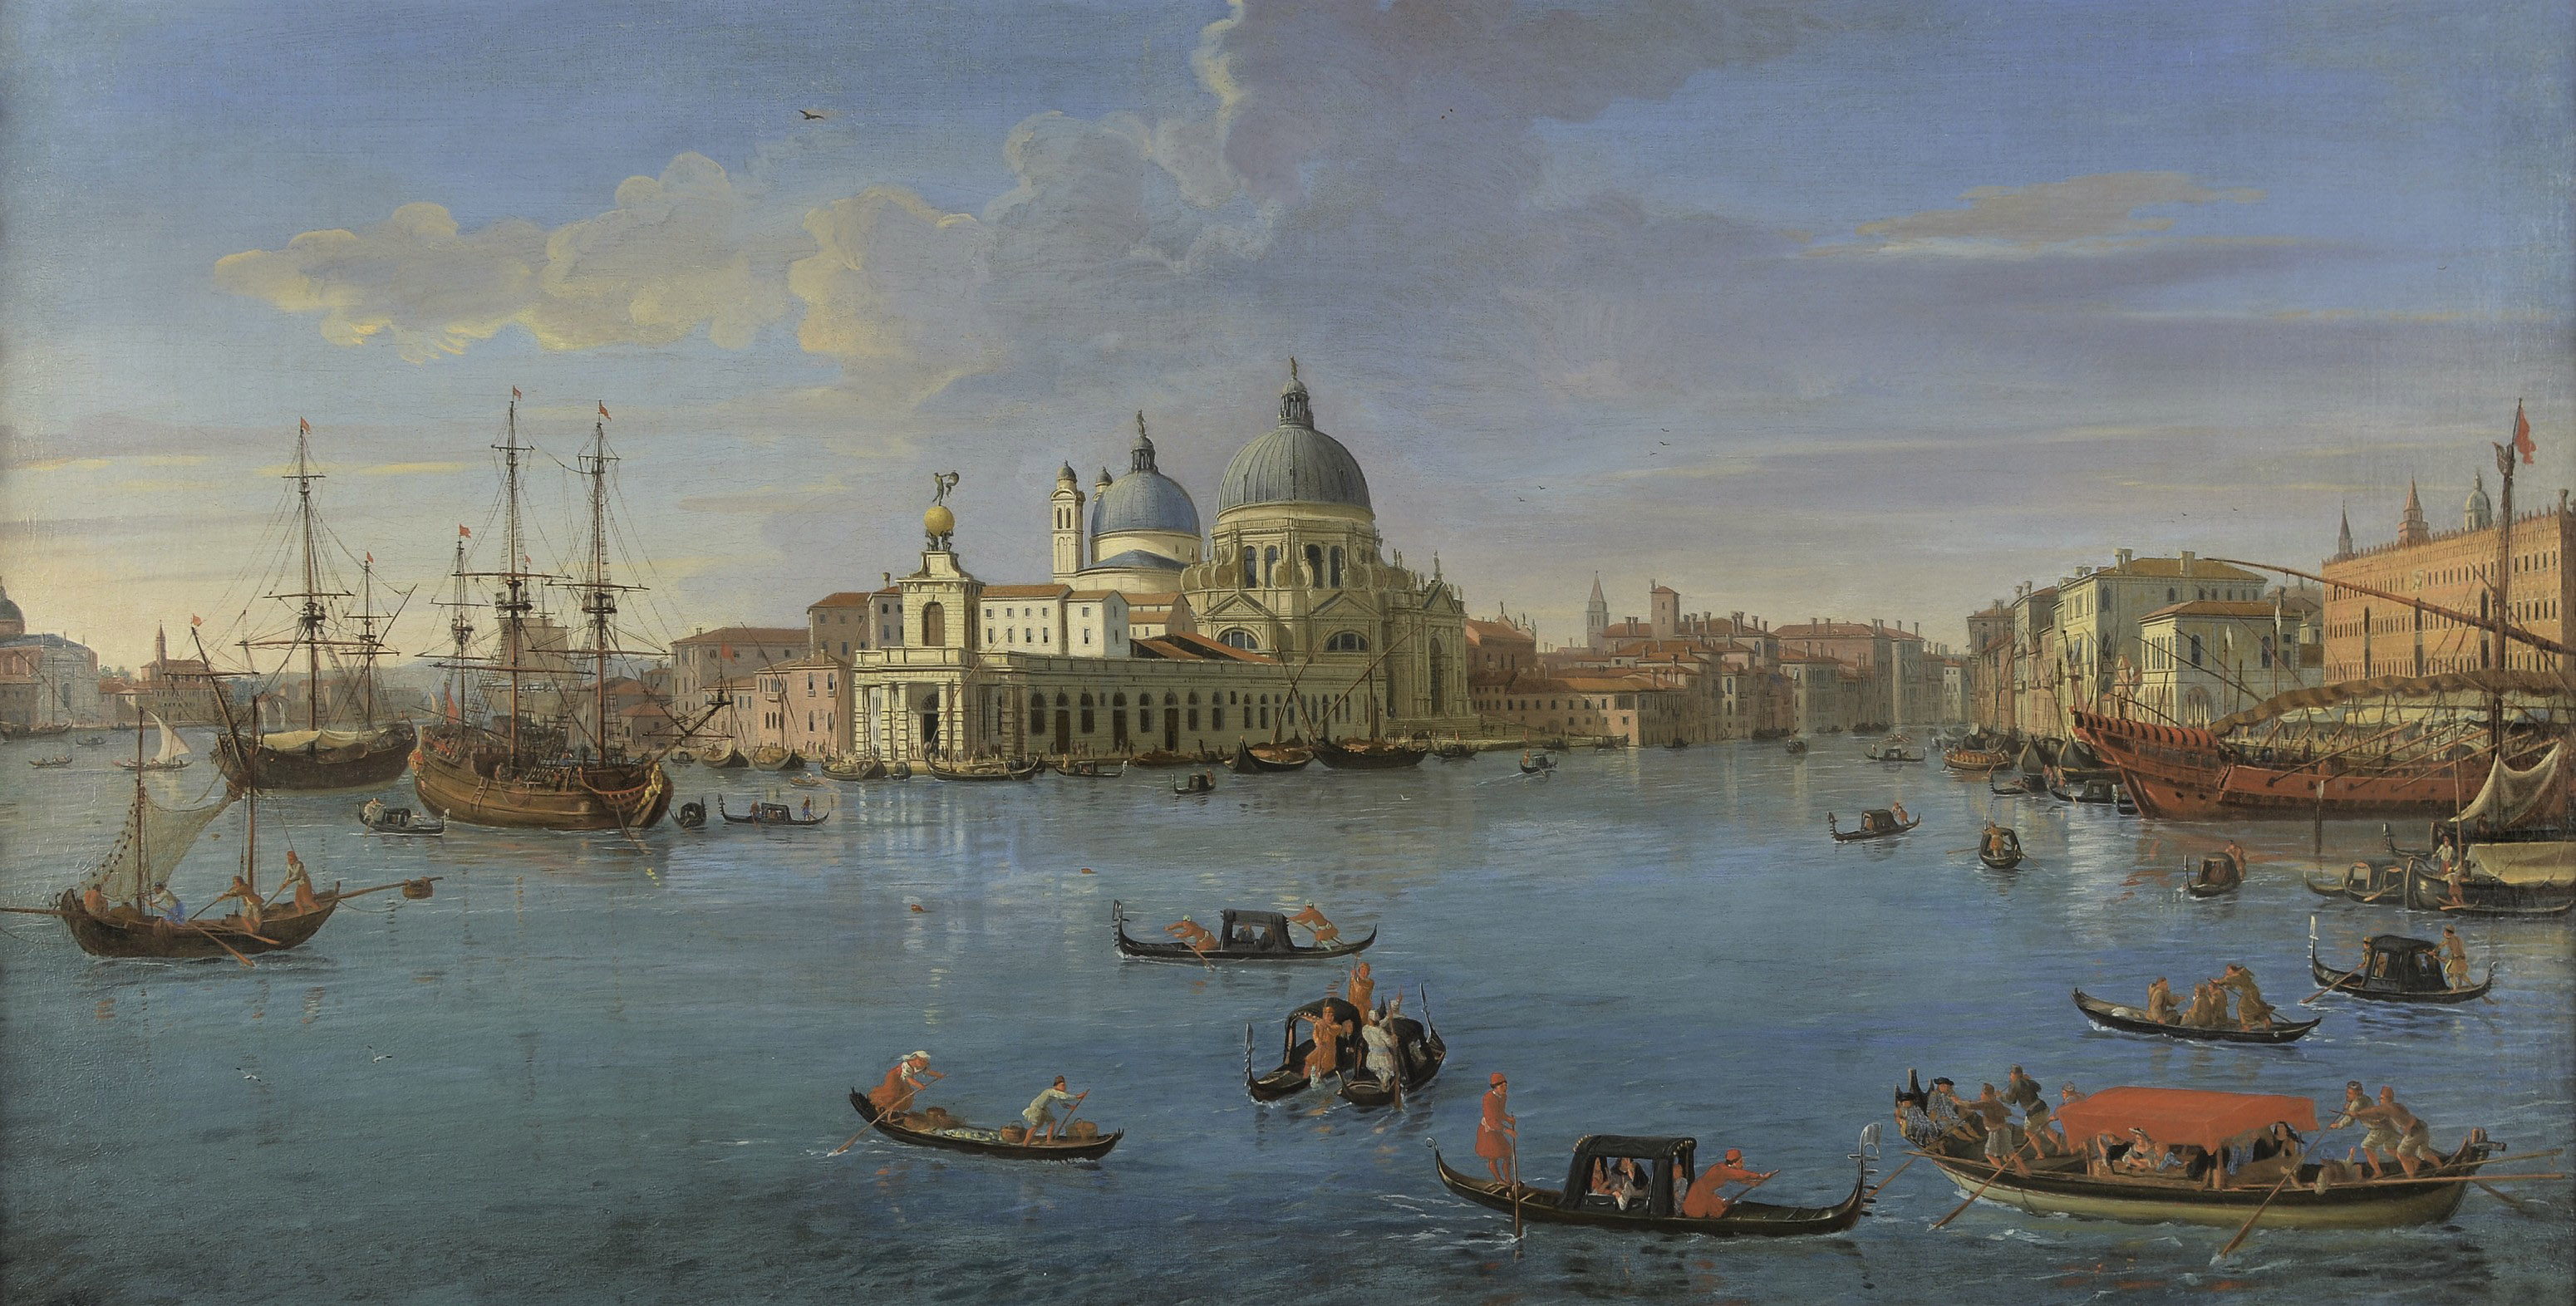 View of the Bacino di San Marco, Venice, from the Grand Canal